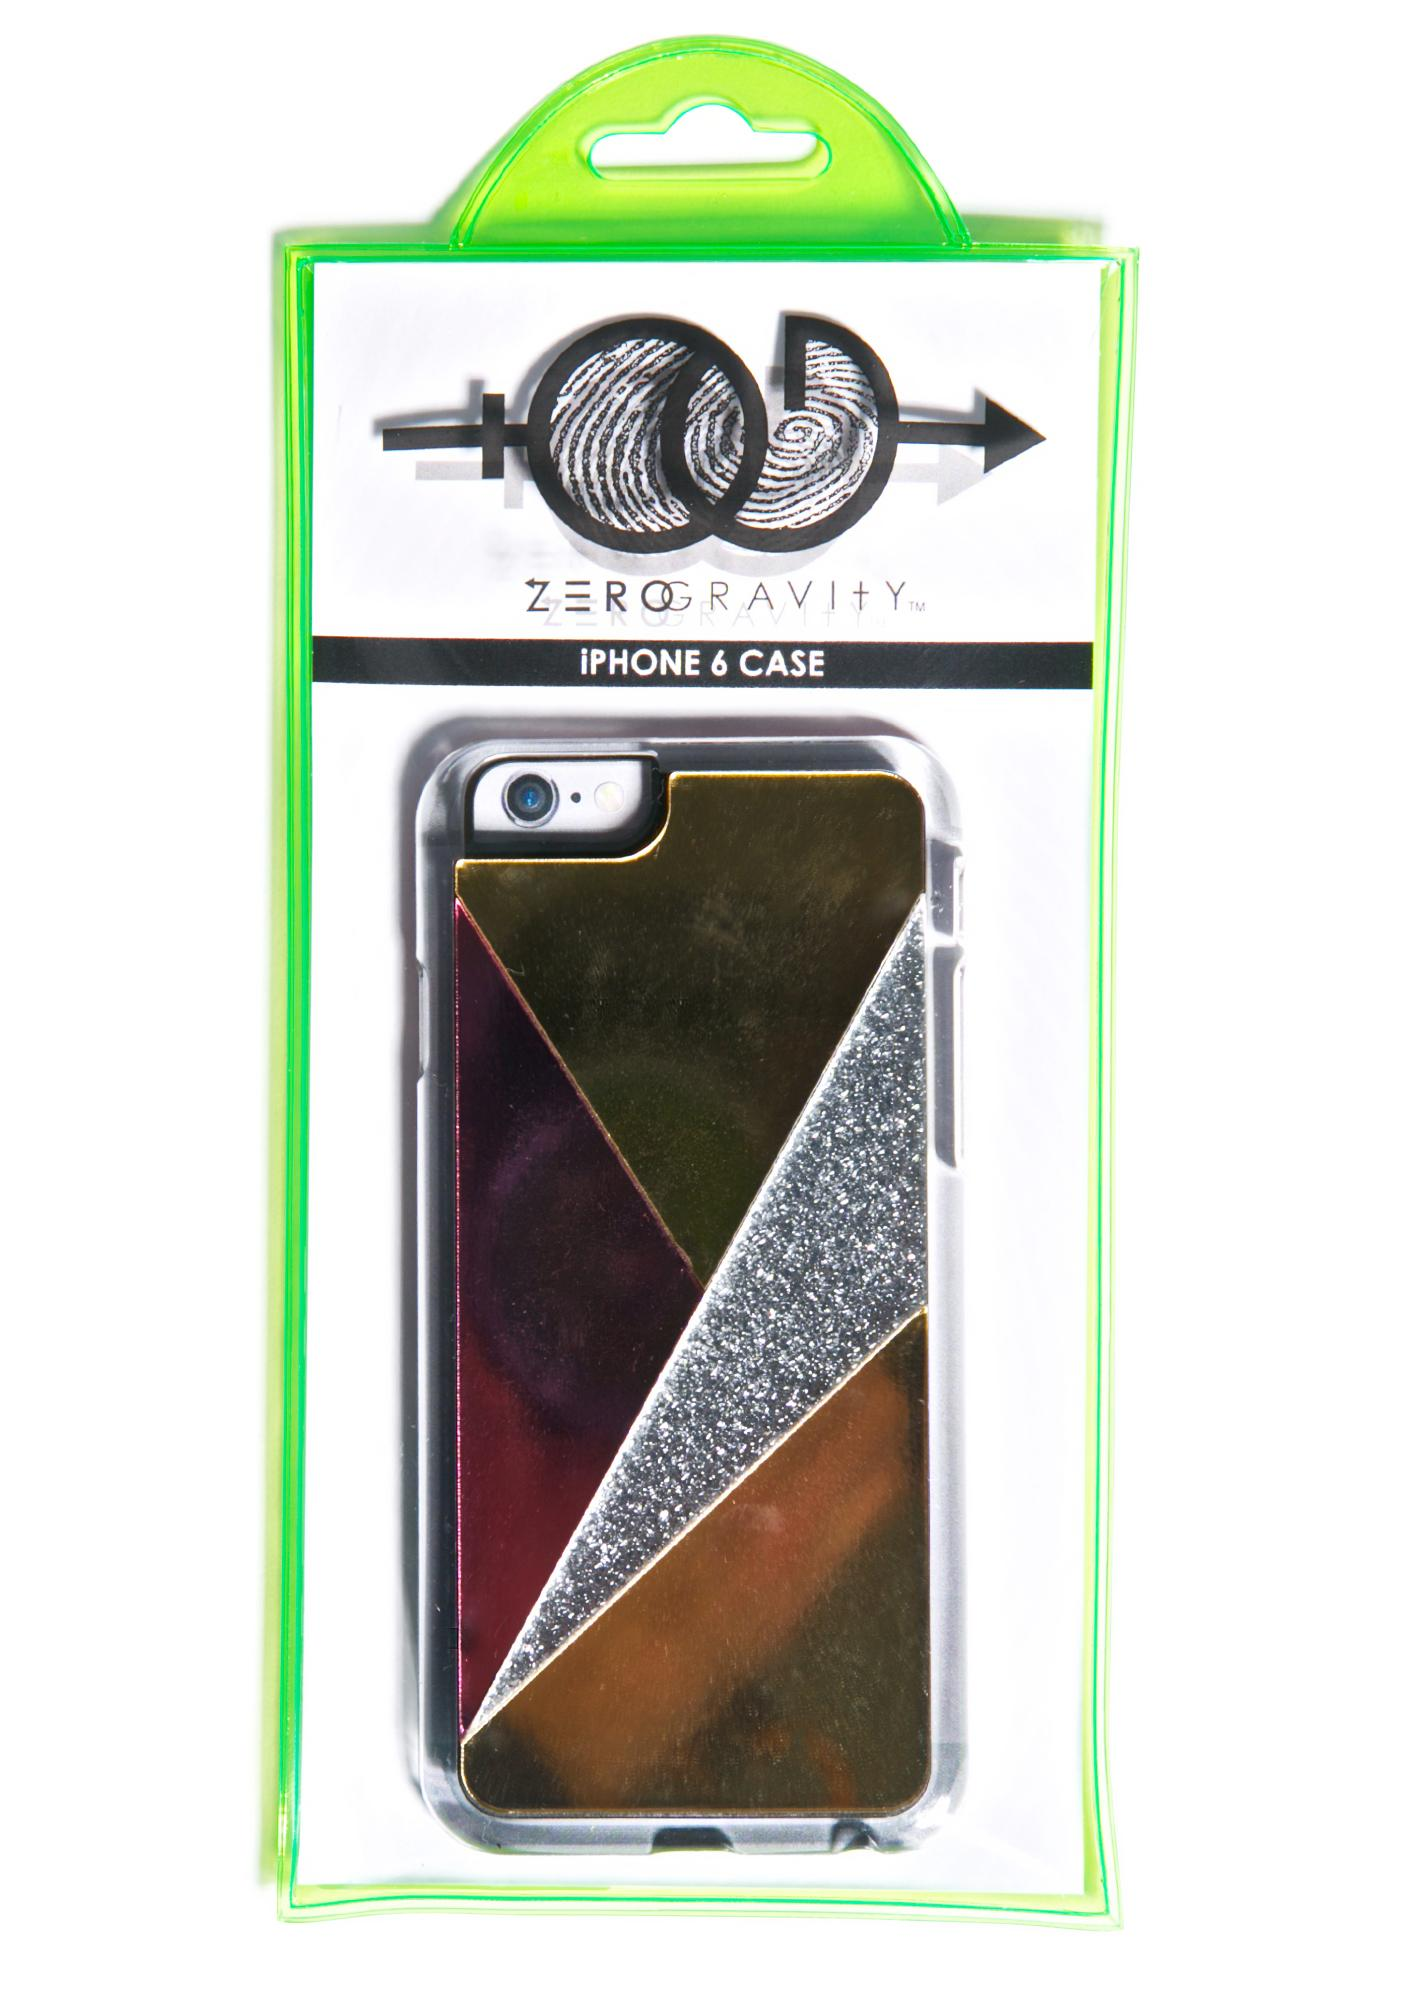 Zero Gravity Nouveau iPhone 6 Case